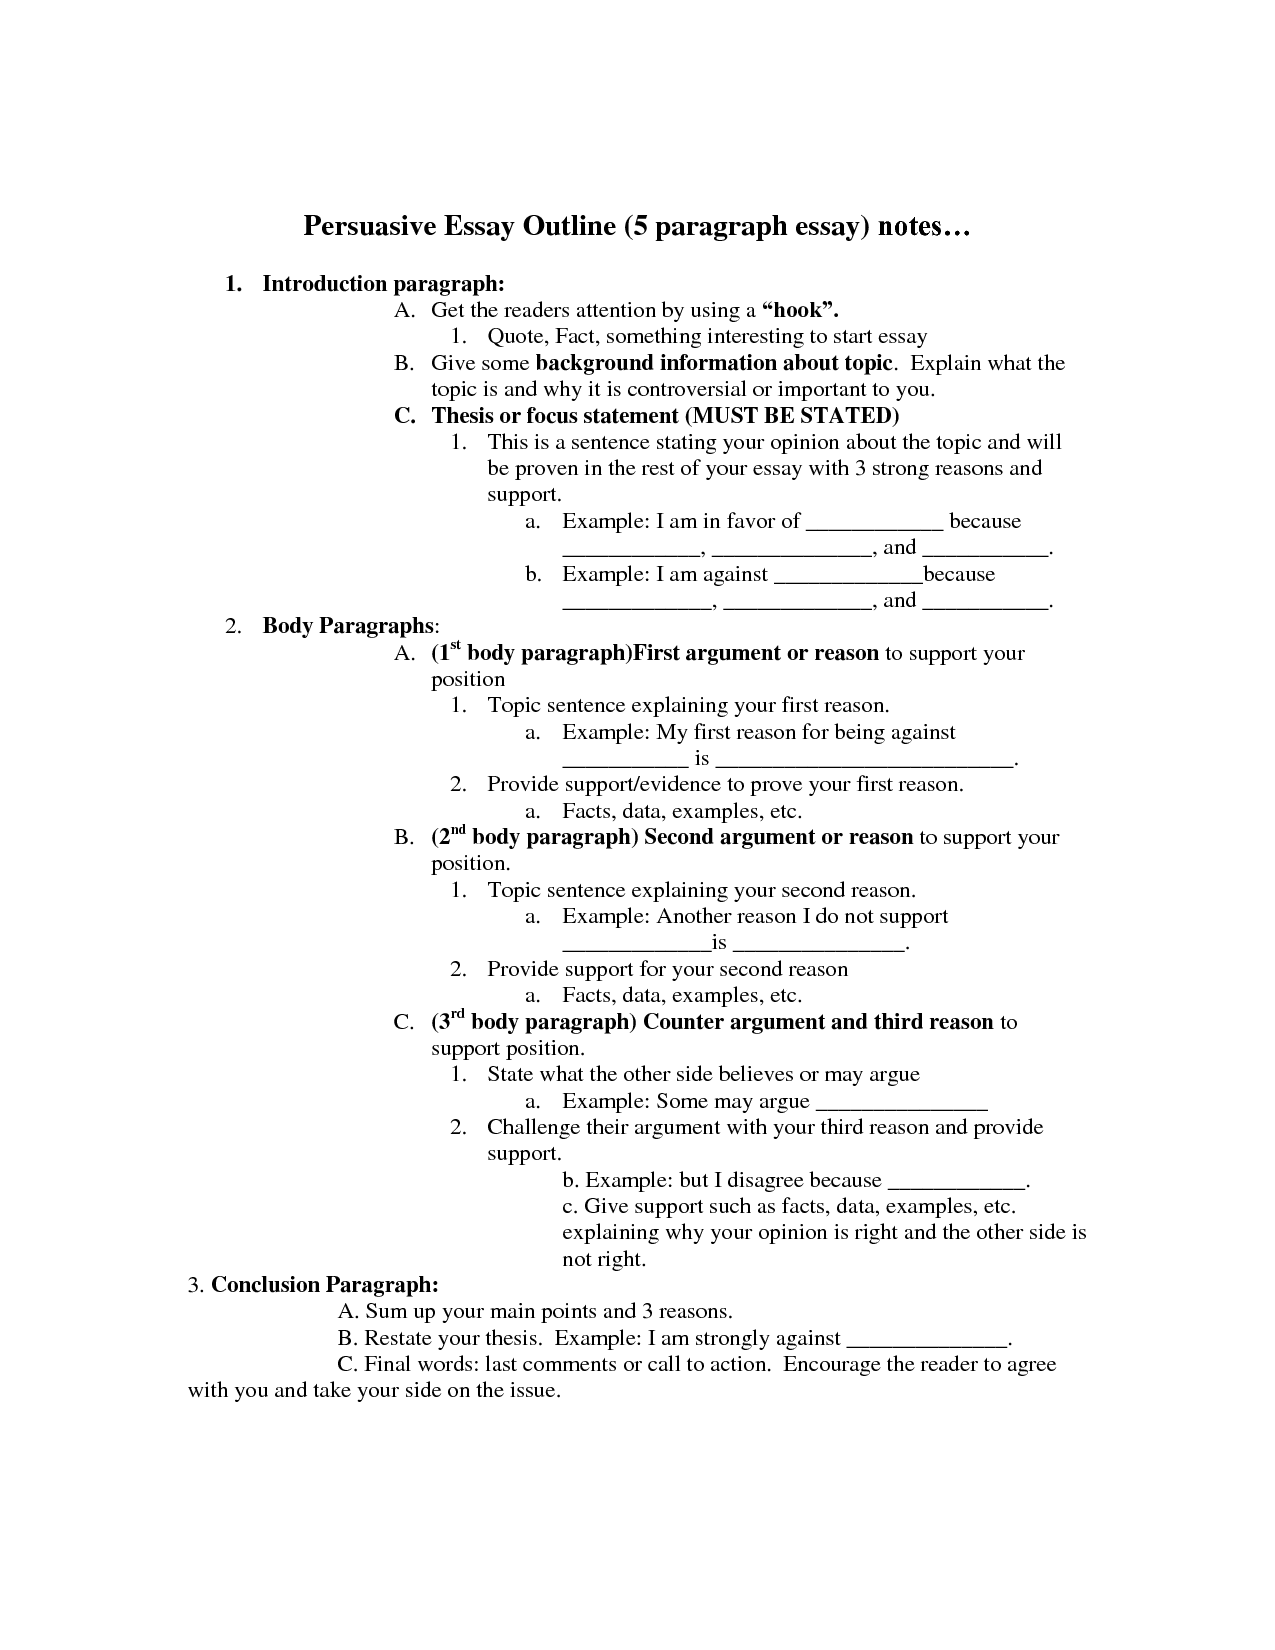 010 Outlining An Essay Best Lesson Plan Worksheets Article Full